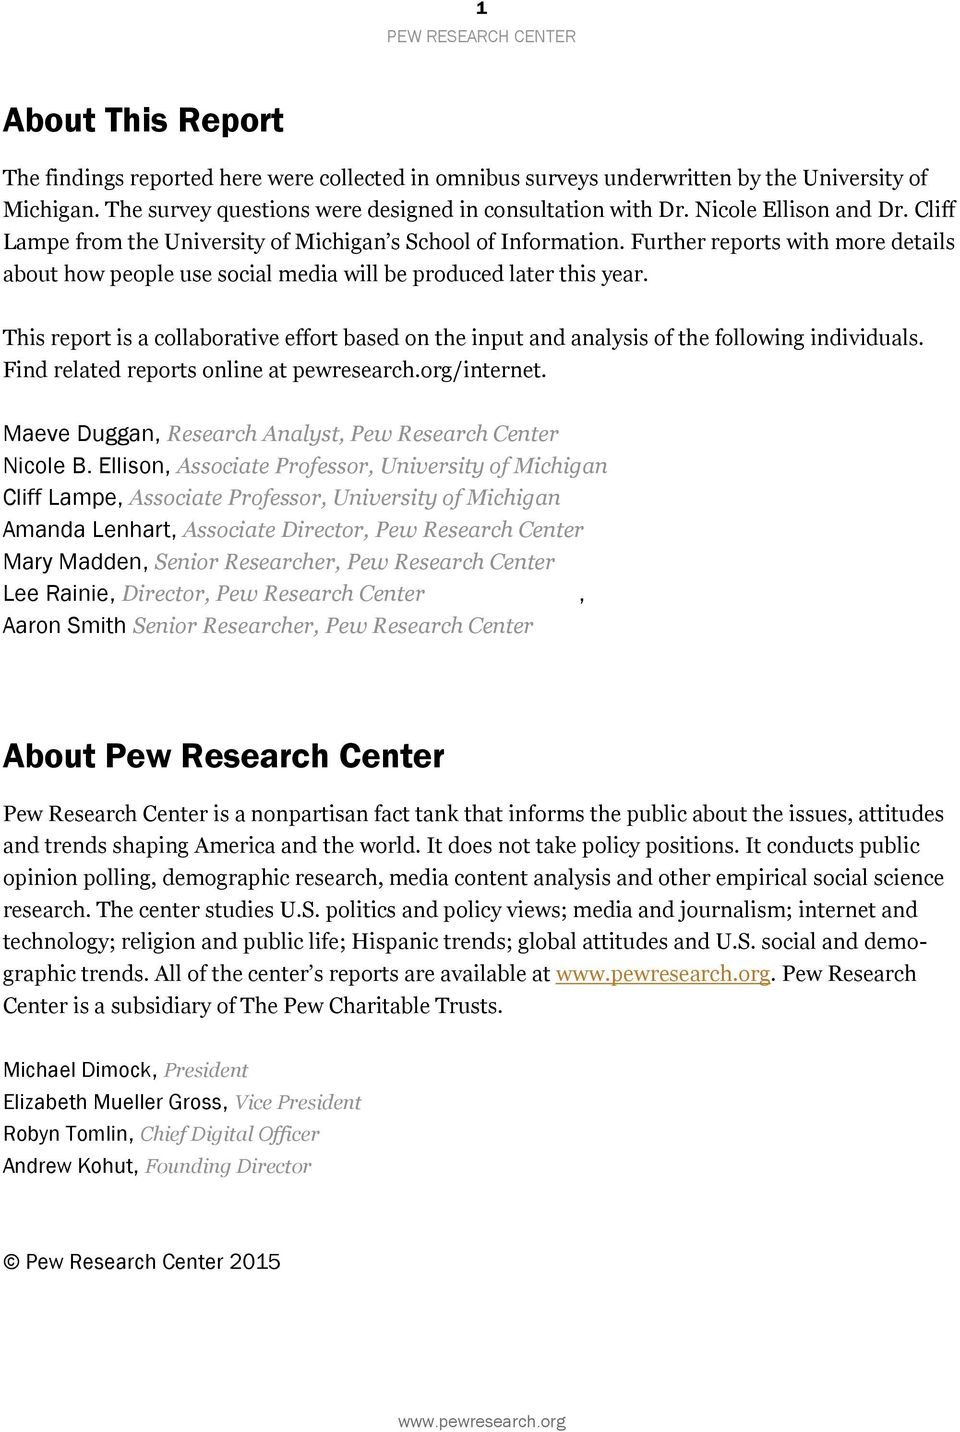 This report is a collaborative effort based on the input and analysis of the following individuals. Find related reports online at pewresearch.org/internet.